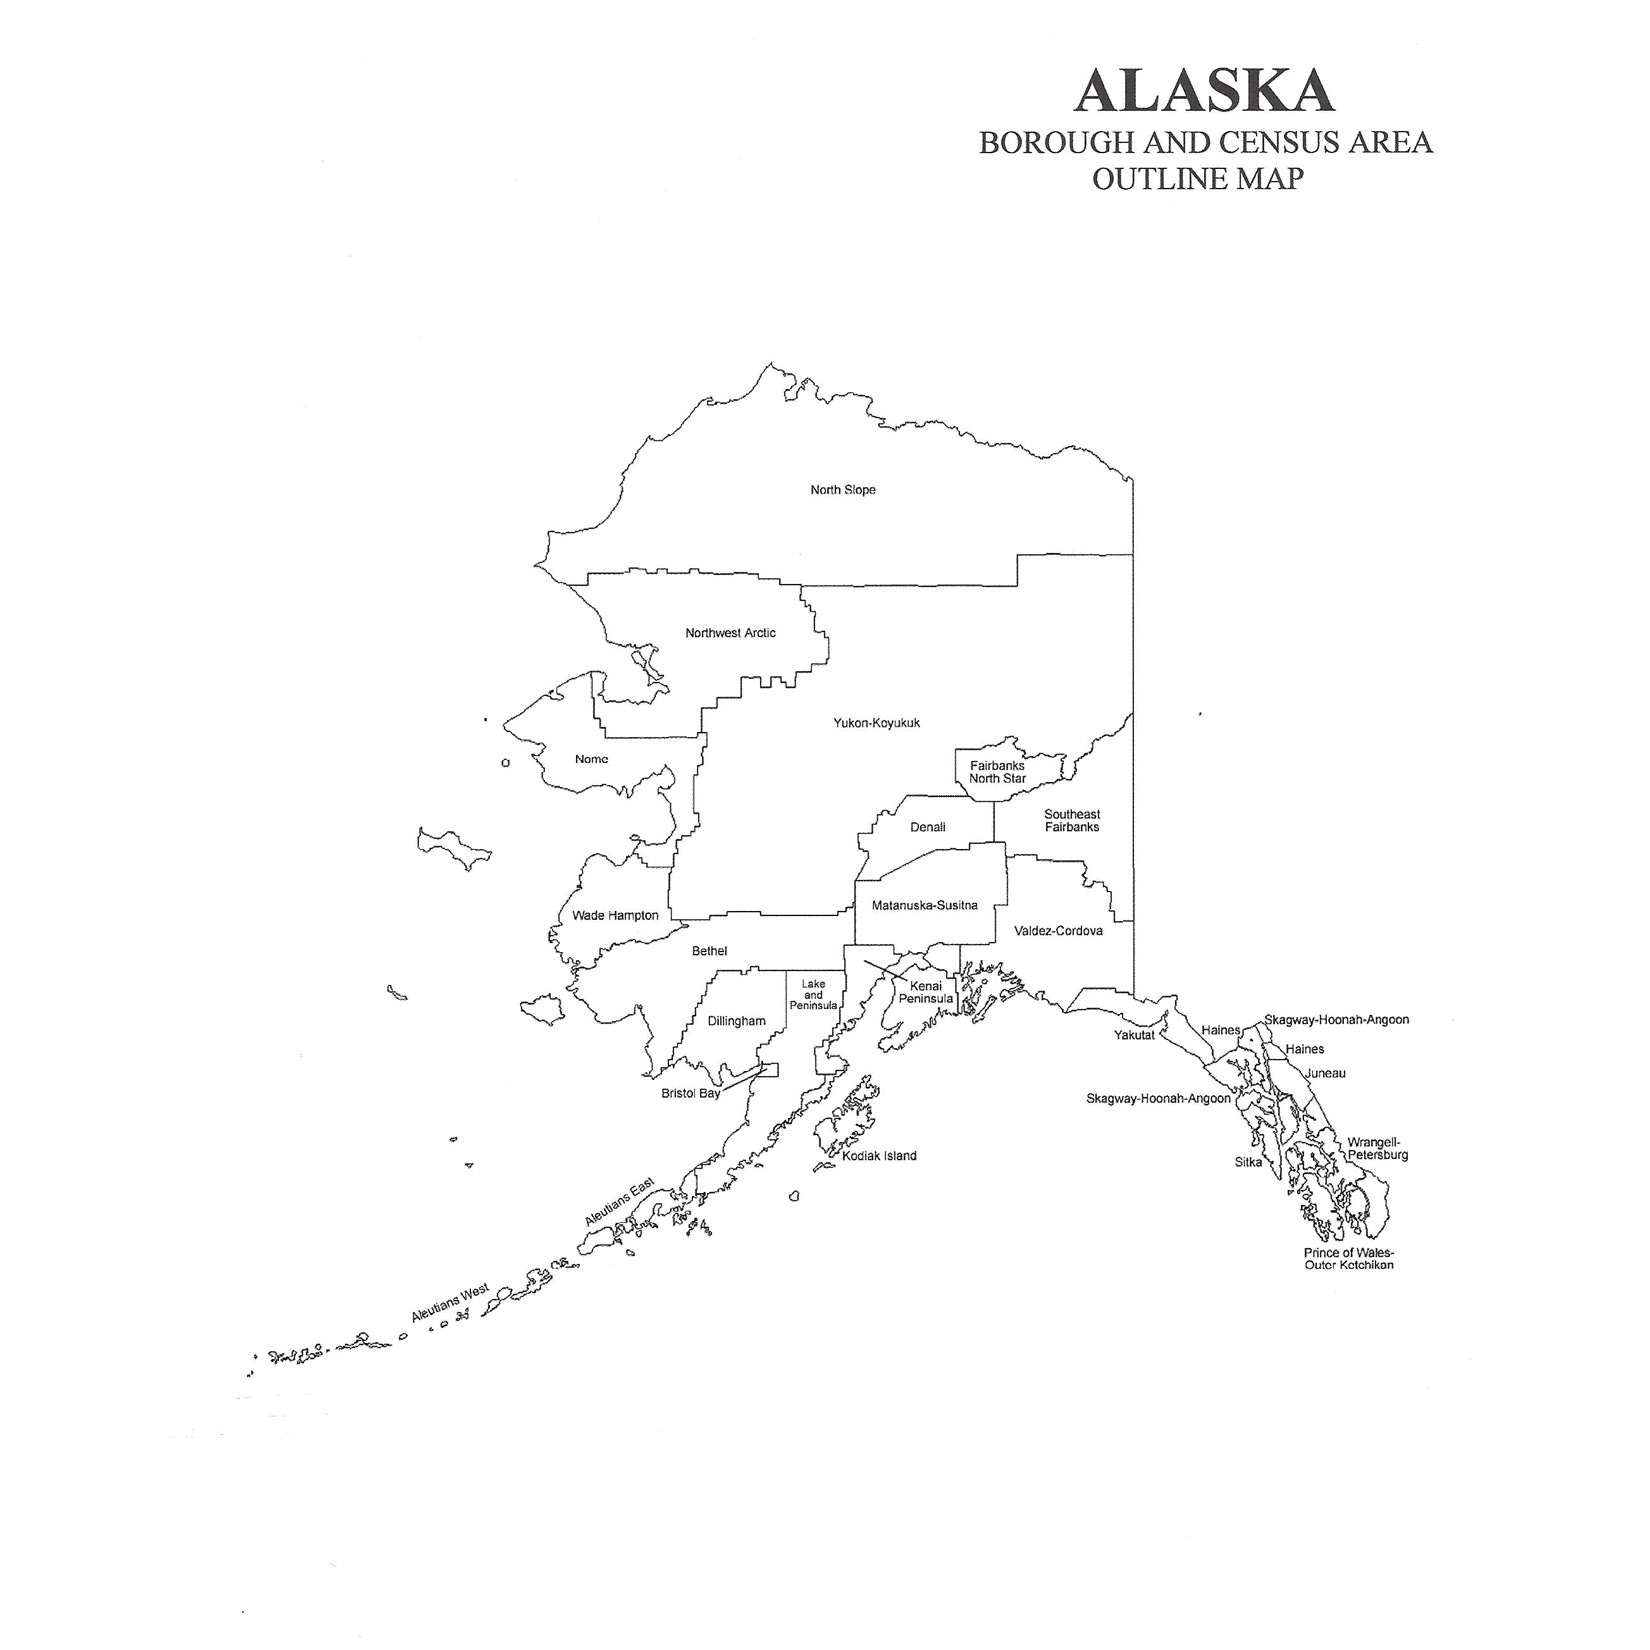 Alaska dillingham county - Alaska Borough And Census Area Map